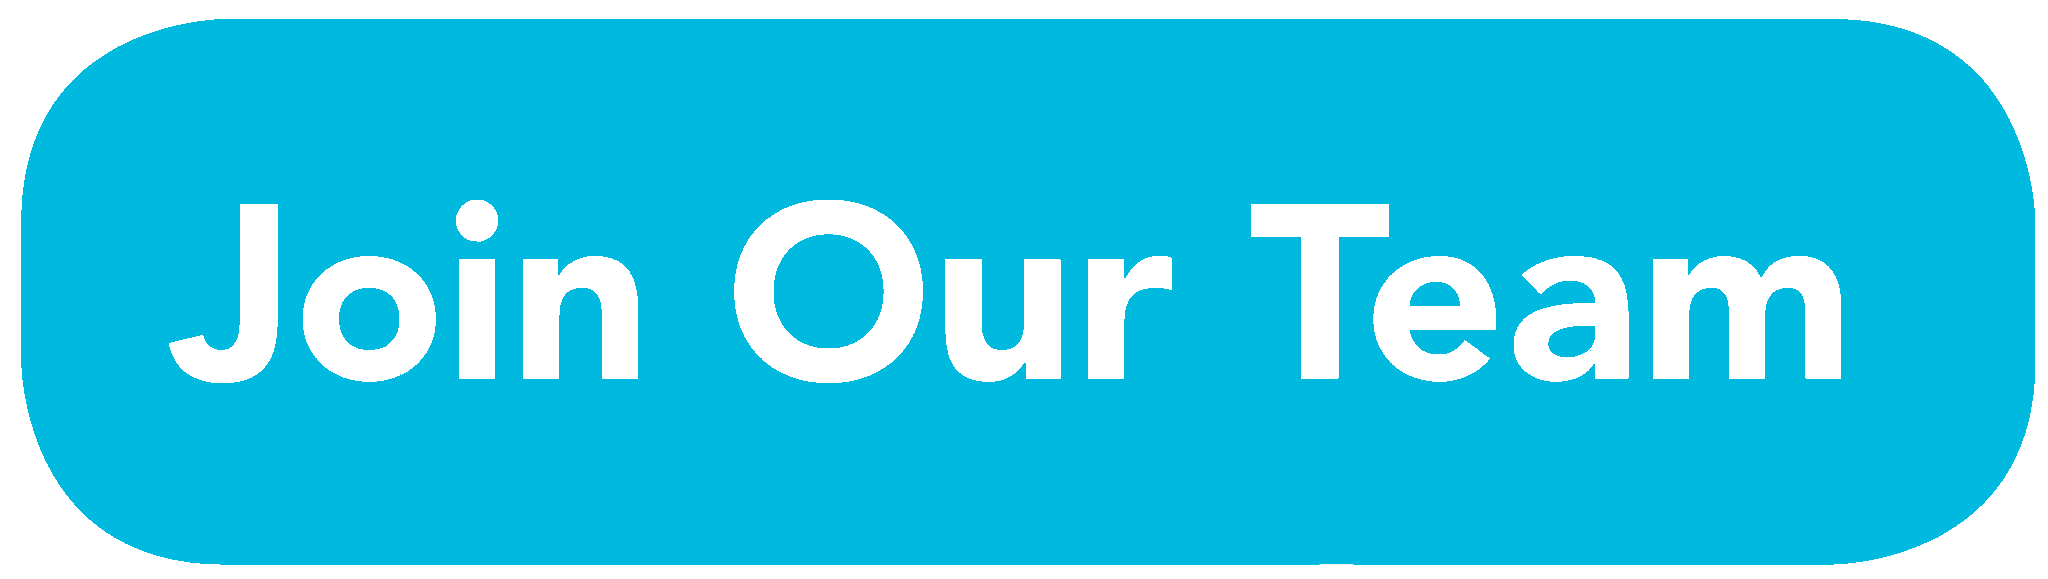 join-our-team-button blue